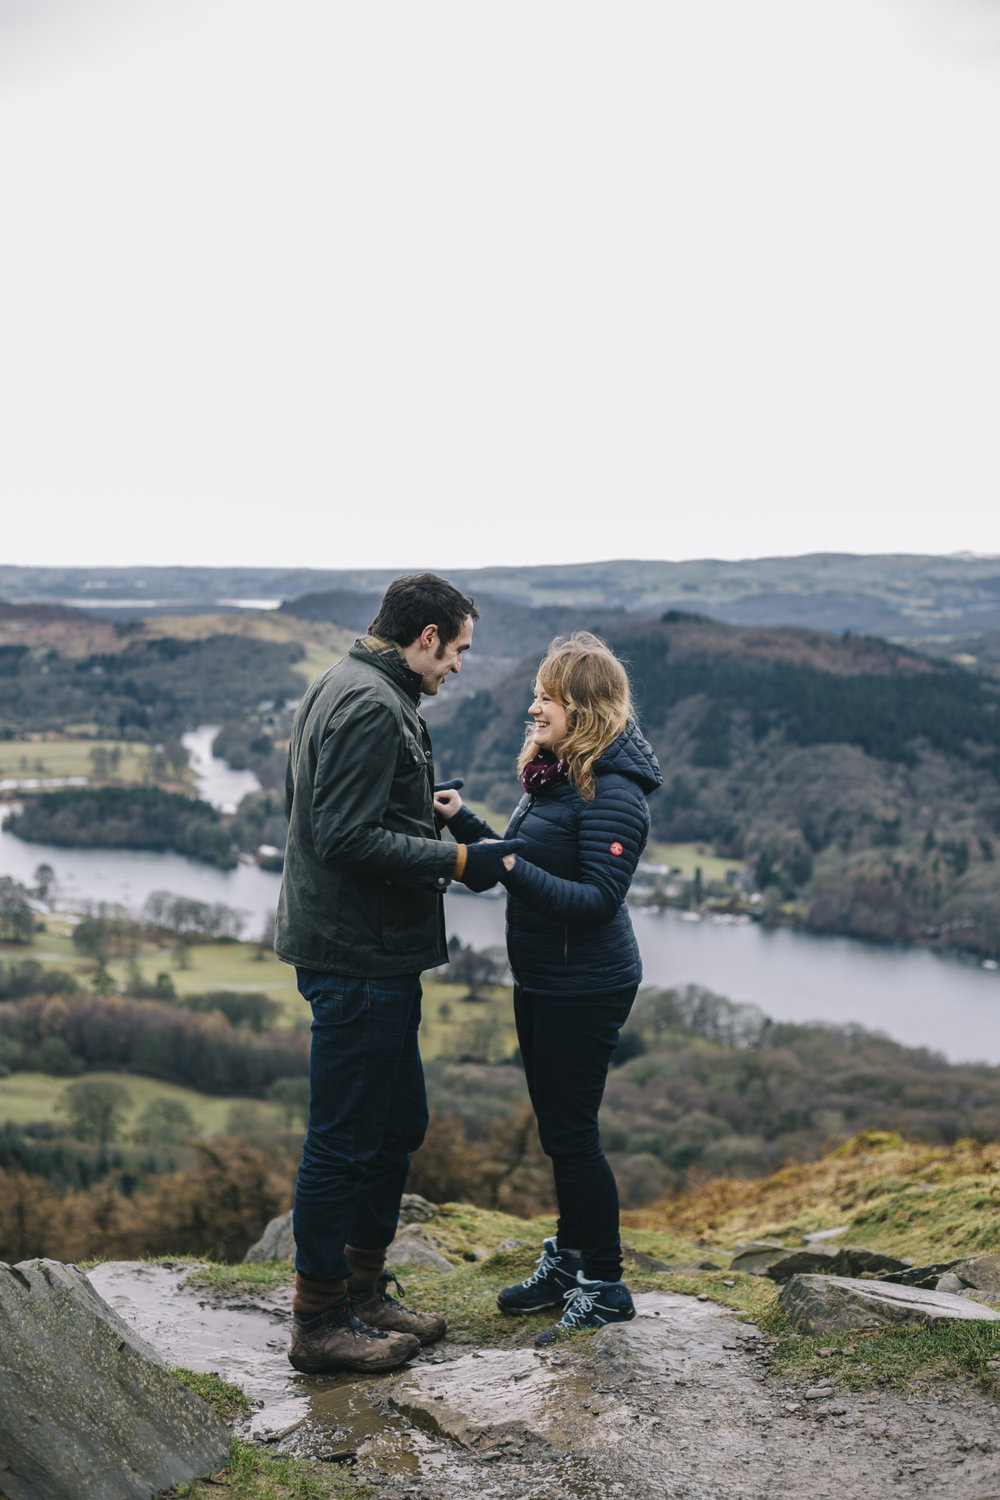 Alex + Matt - Windermere Engagement Photography - Claire Basiuk - 04.jpg